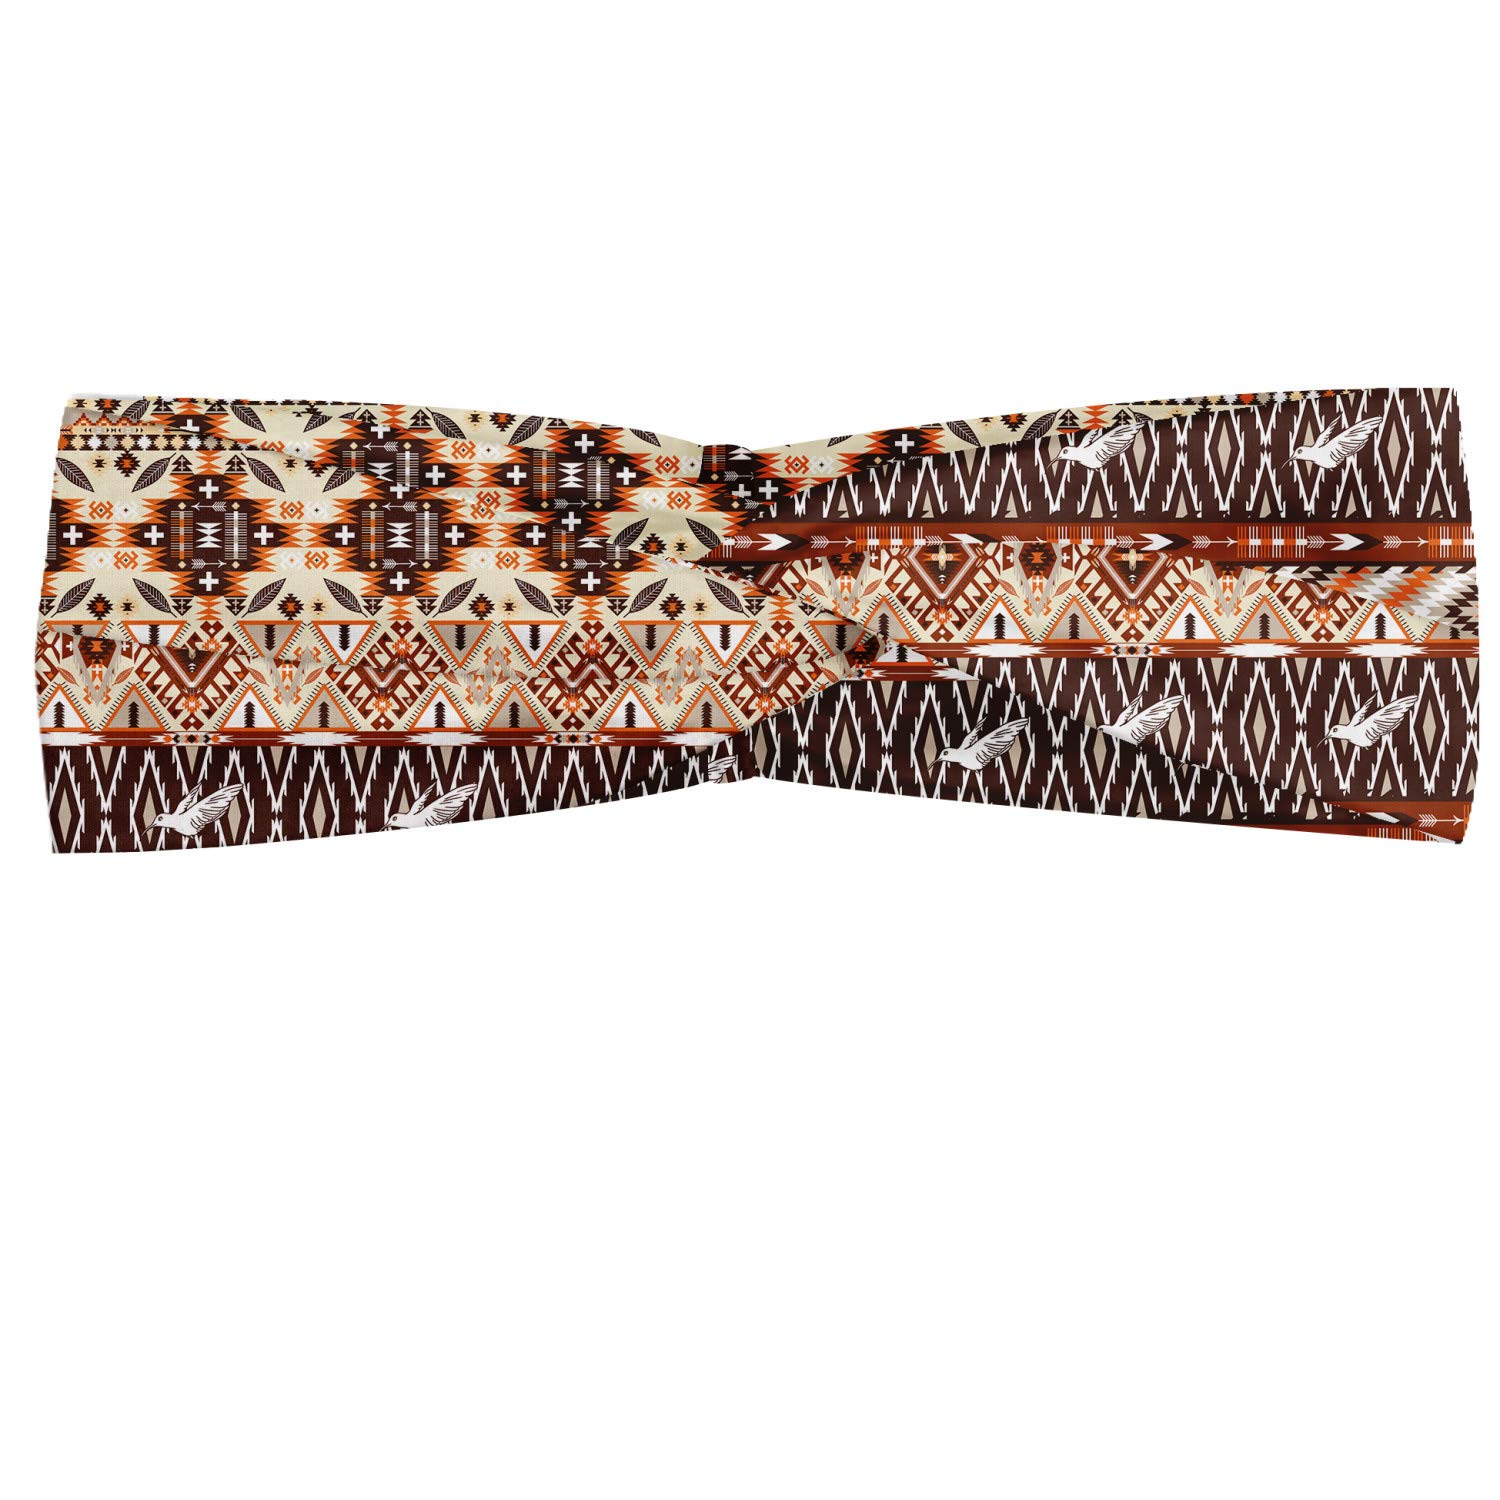 Ambesonne Tribal Headband, Indigenous Art Horizontal Borders with Flying Birds and Geometric Elements, Elastic and Soft Women's Bandana for Sports and Everyday Use, Orange Brown Beige